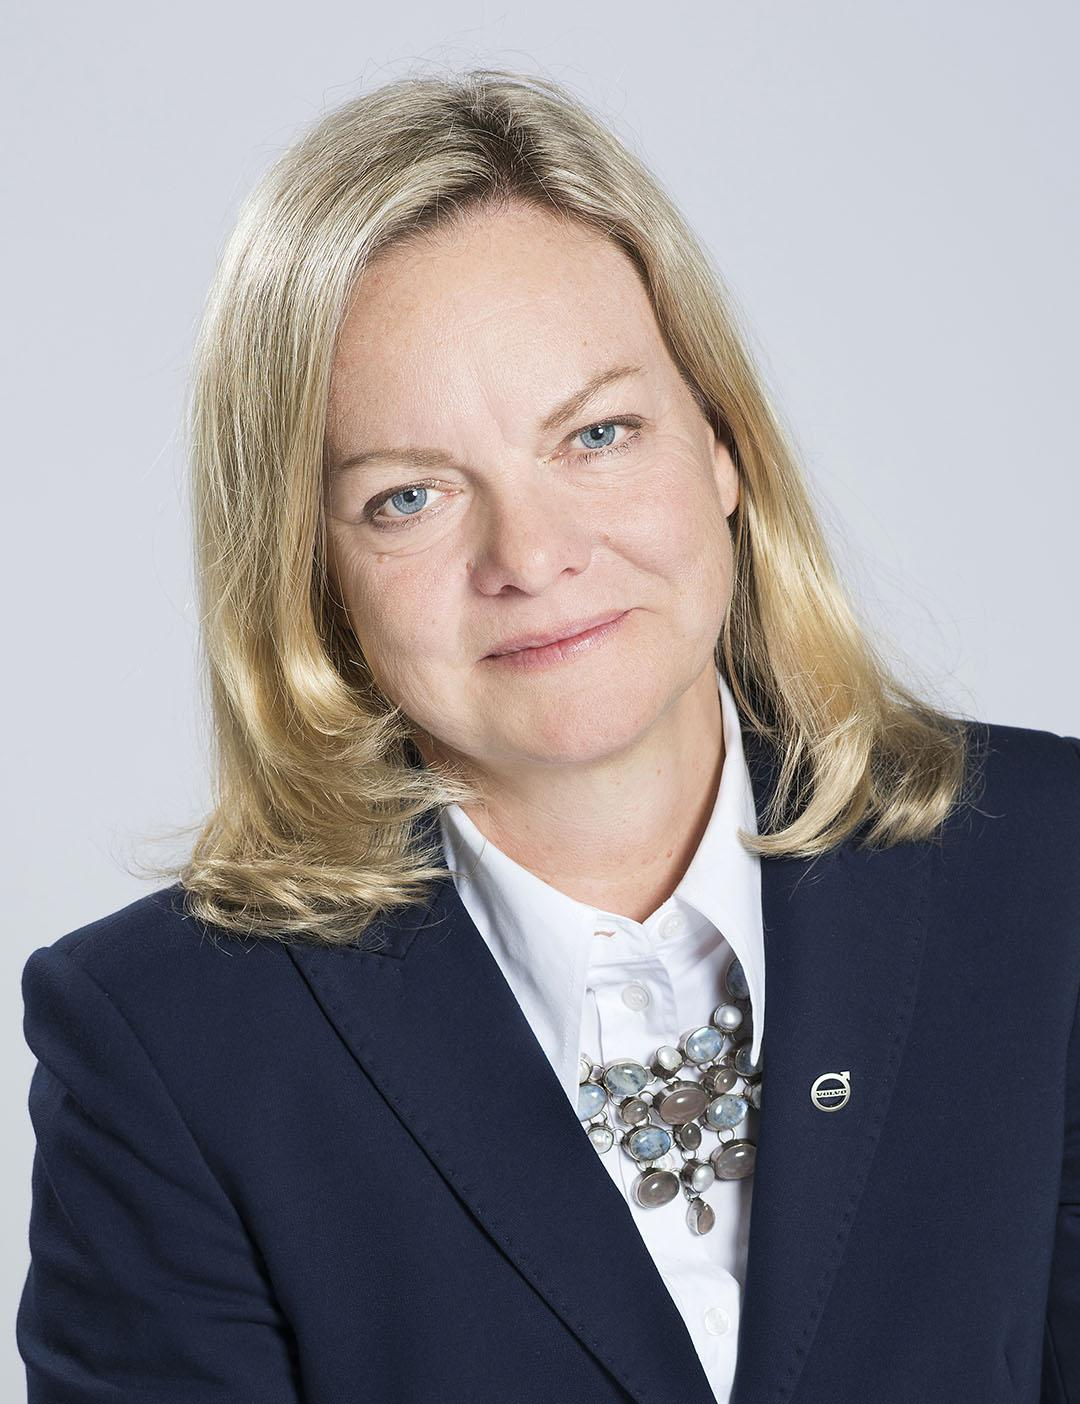 helene mellquist appointed president of volvo penta 1